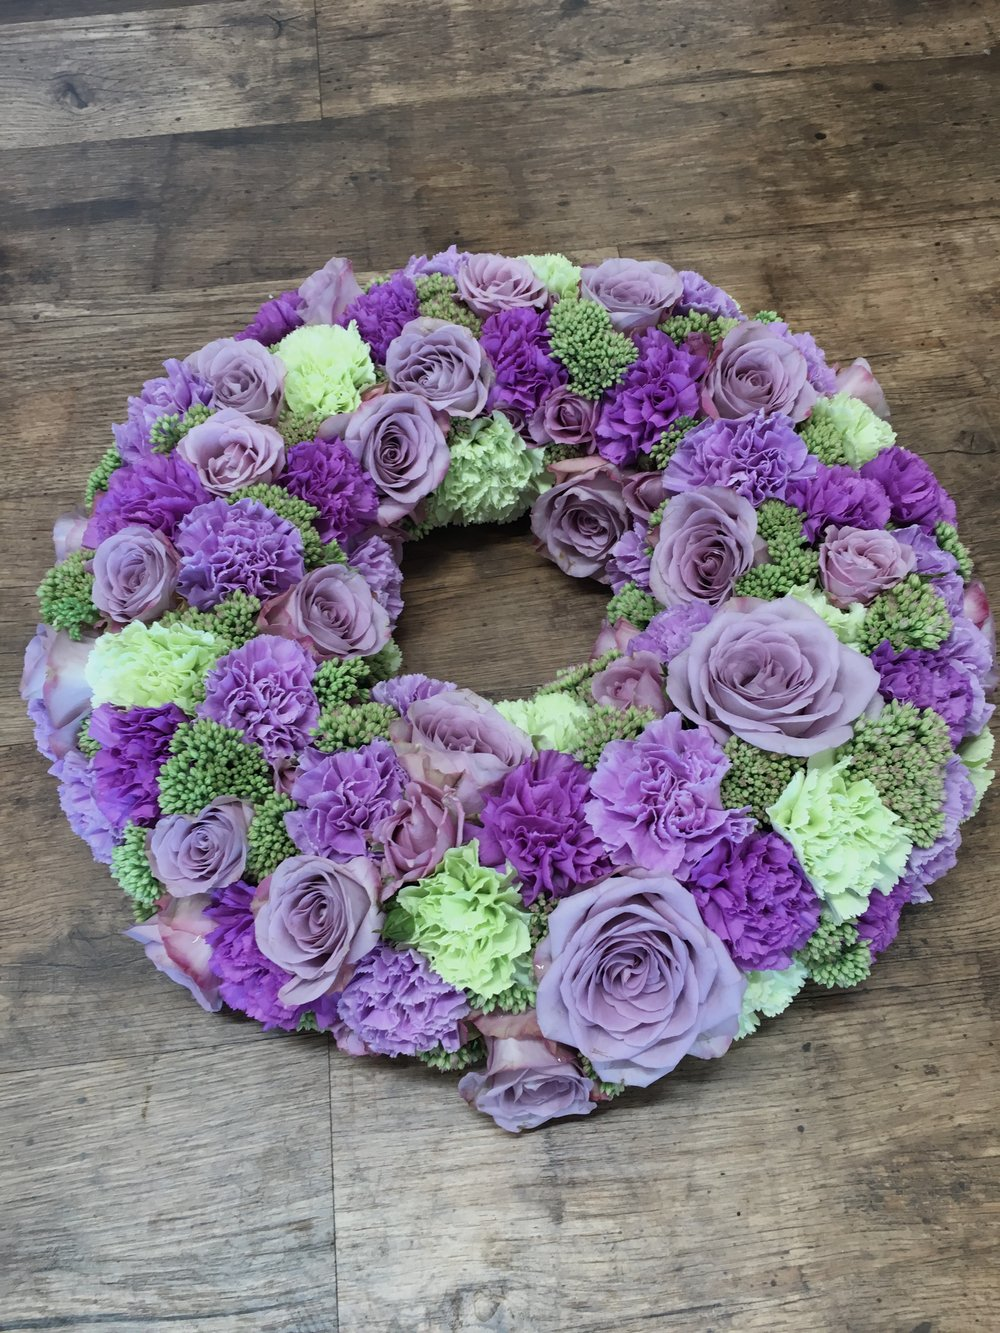 Compact classic wreath of Roses and Dianthus.jpg